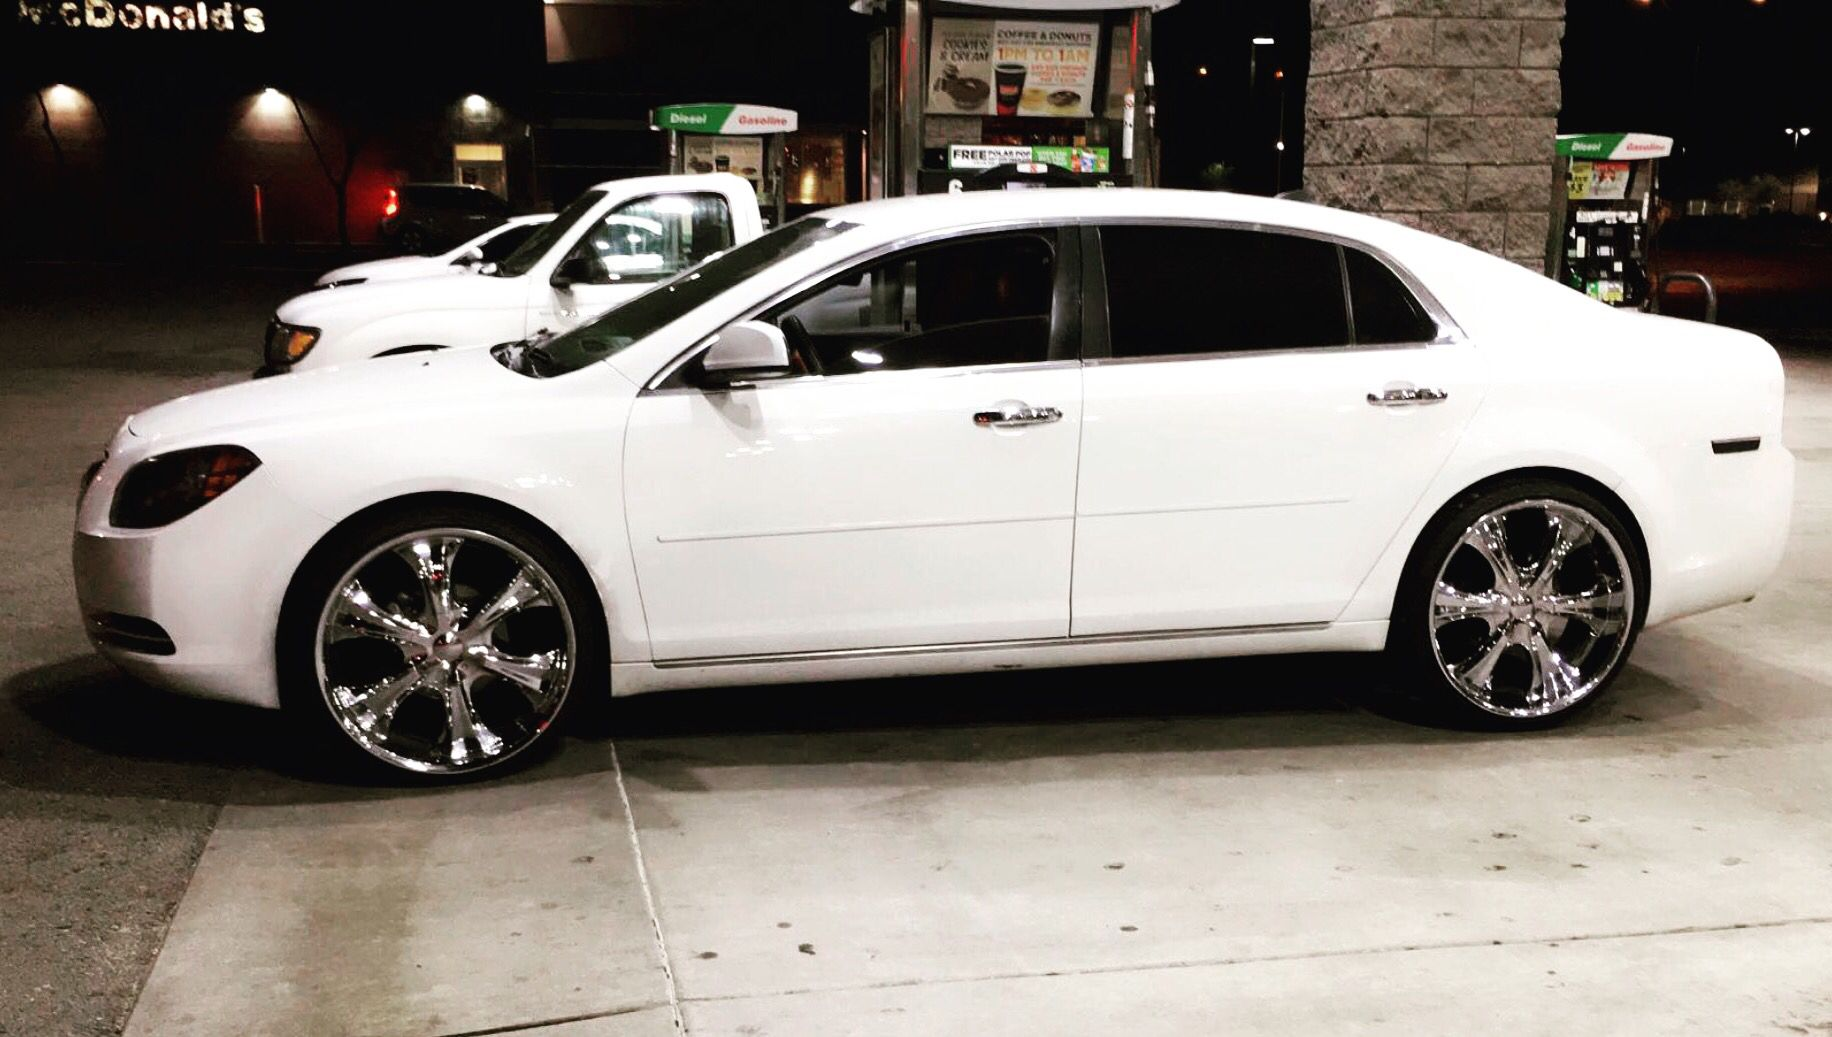 My Baby 2012 Chevy Malibu Sittin On 22s 2012 Chevy Malibu Chevy